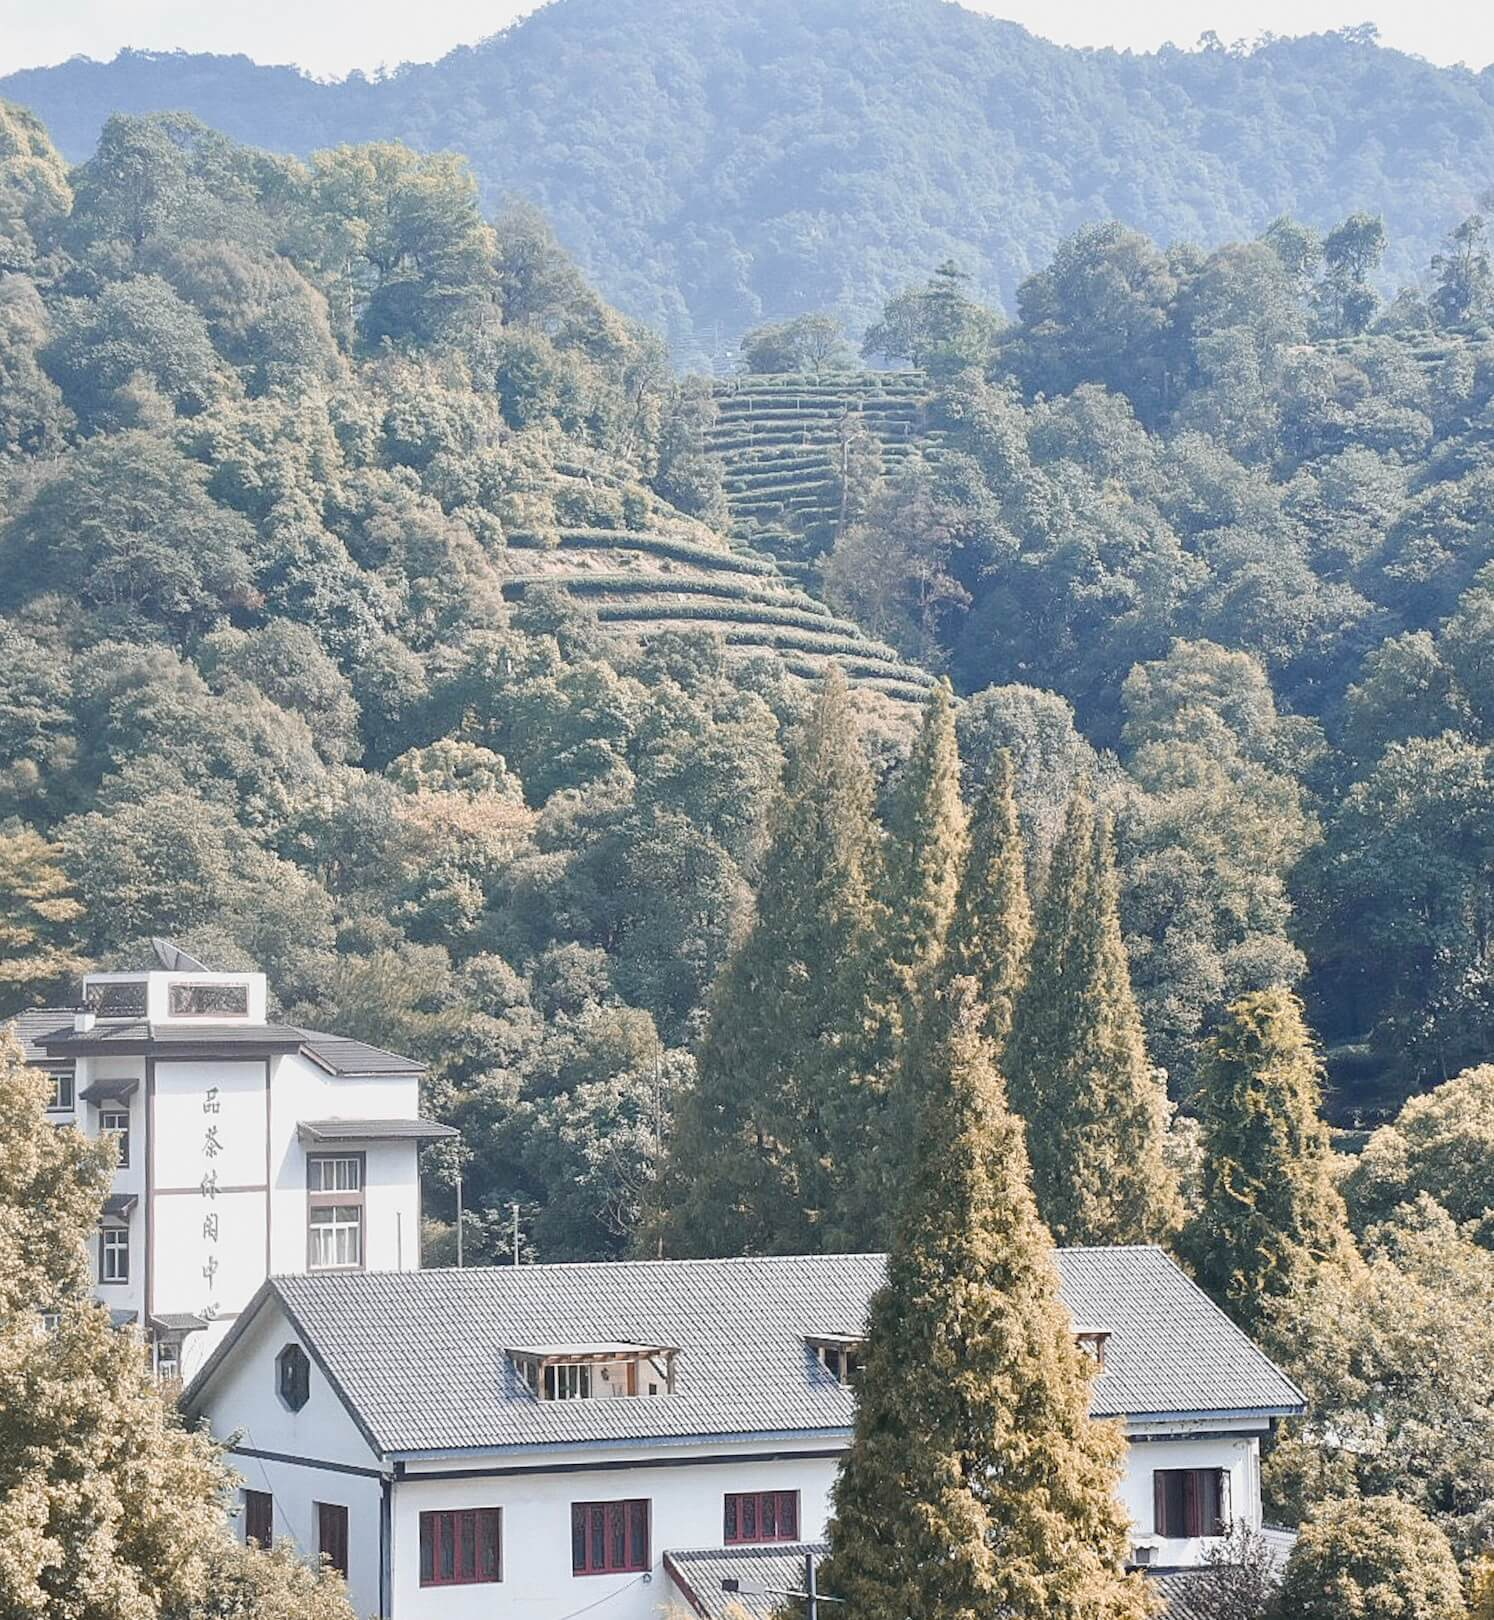 Overlooking the rolling hills and tea plantations of Hangzhou